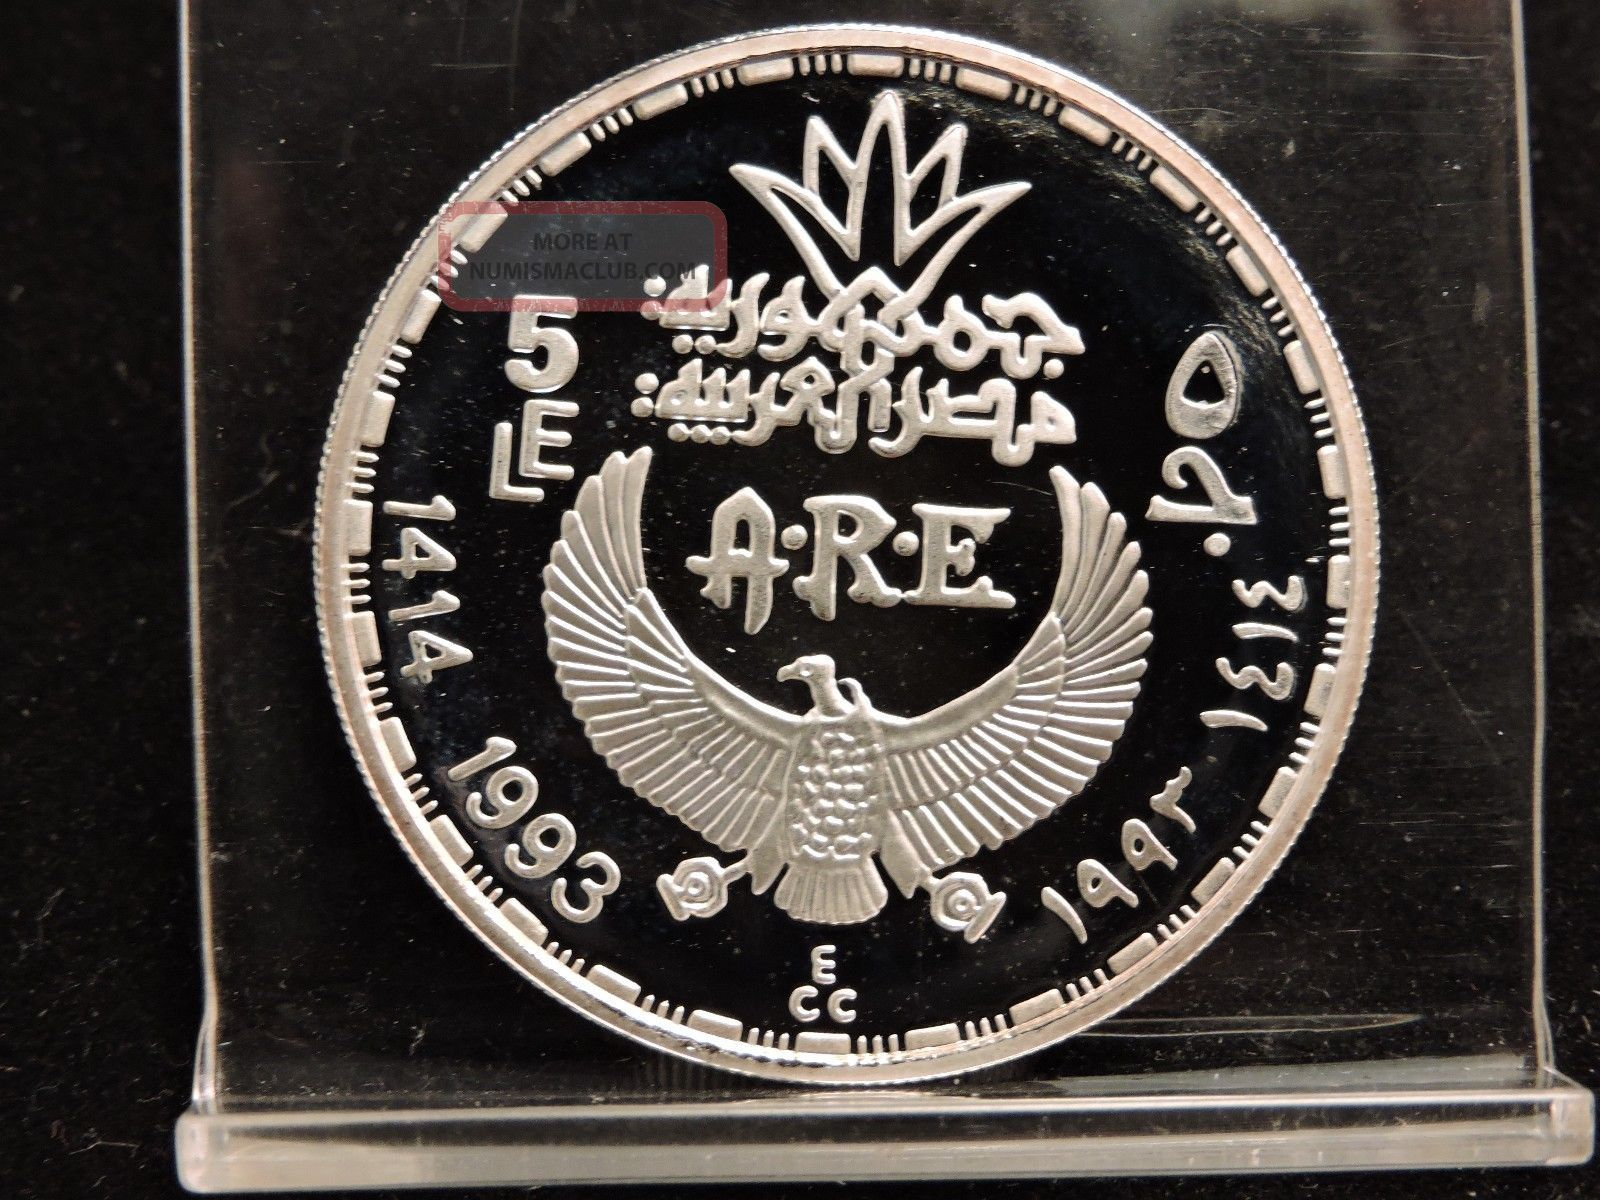 1993 Egypt Standing Ramses Ii 5 Pound Proof Silver Coin 1414 1993 Egypt